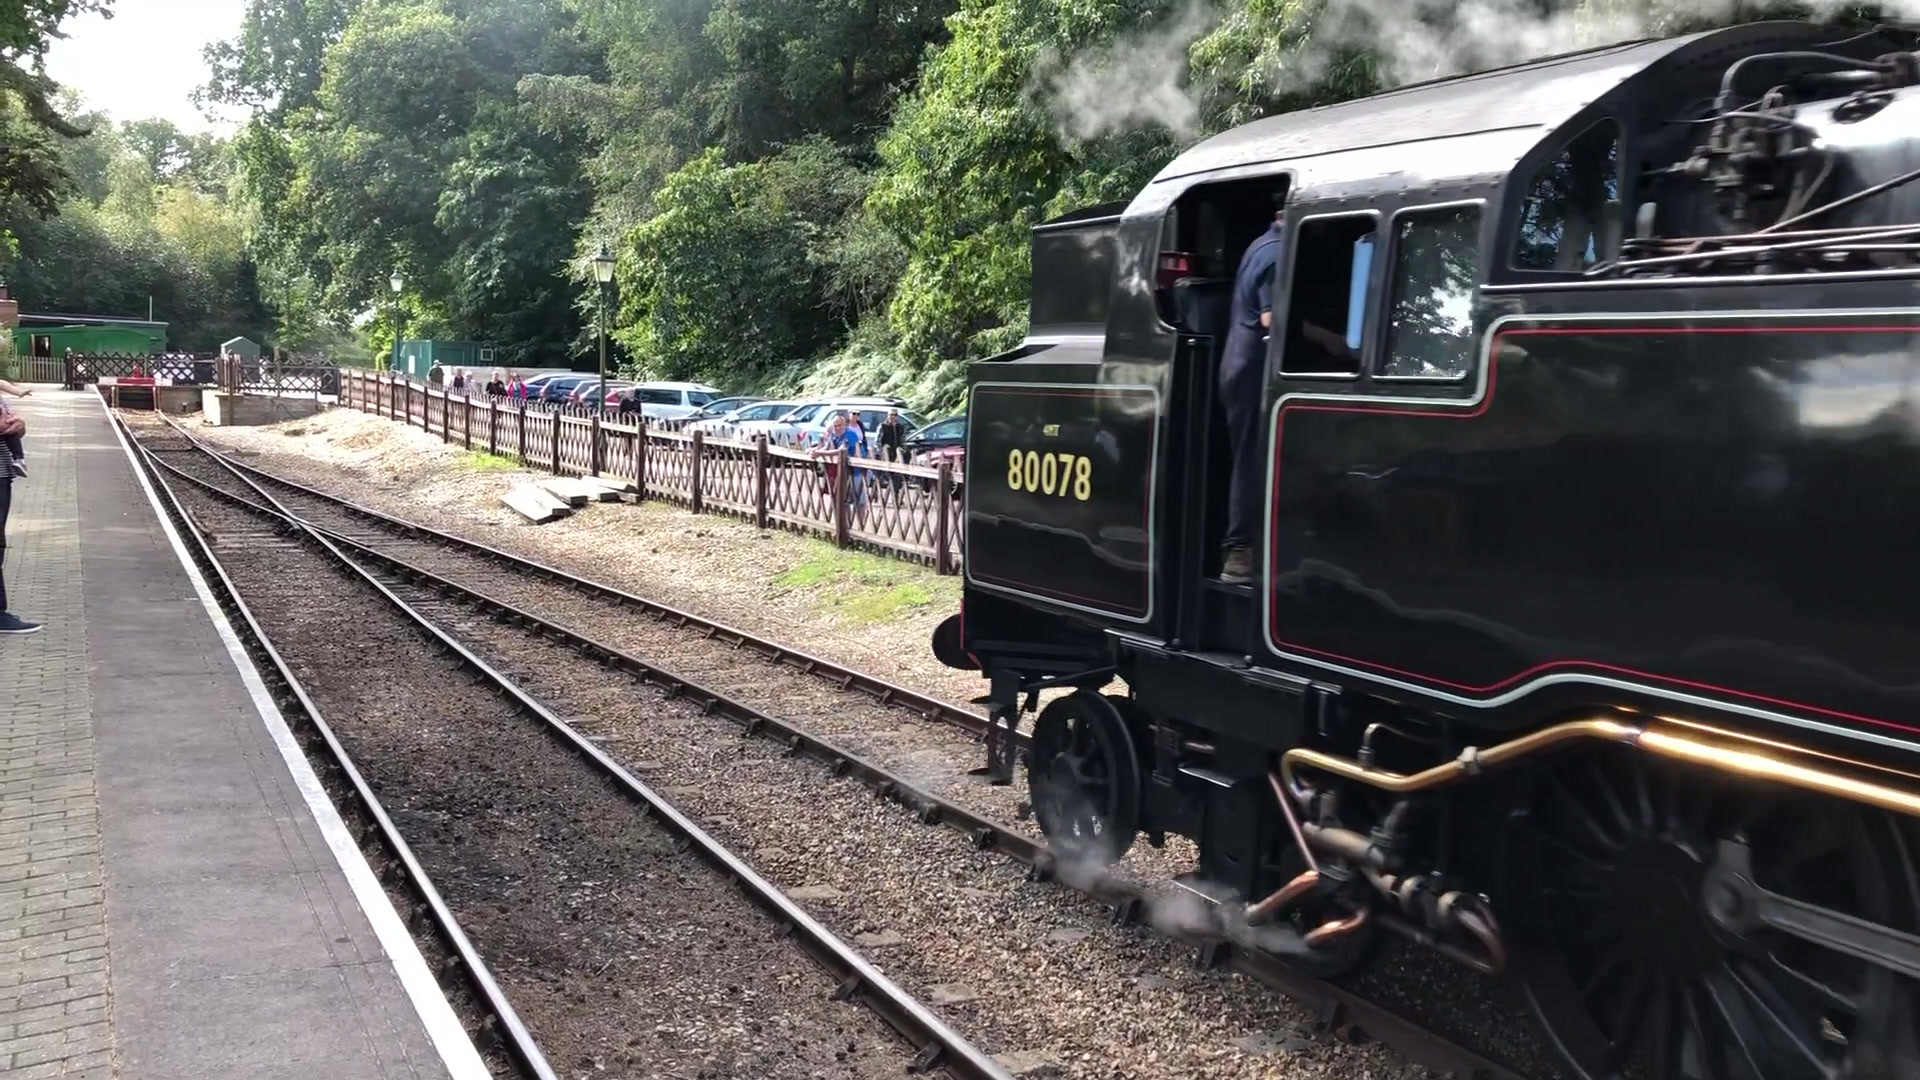 NORTH NORFOLK RAILWAY STEAM GALA 2019